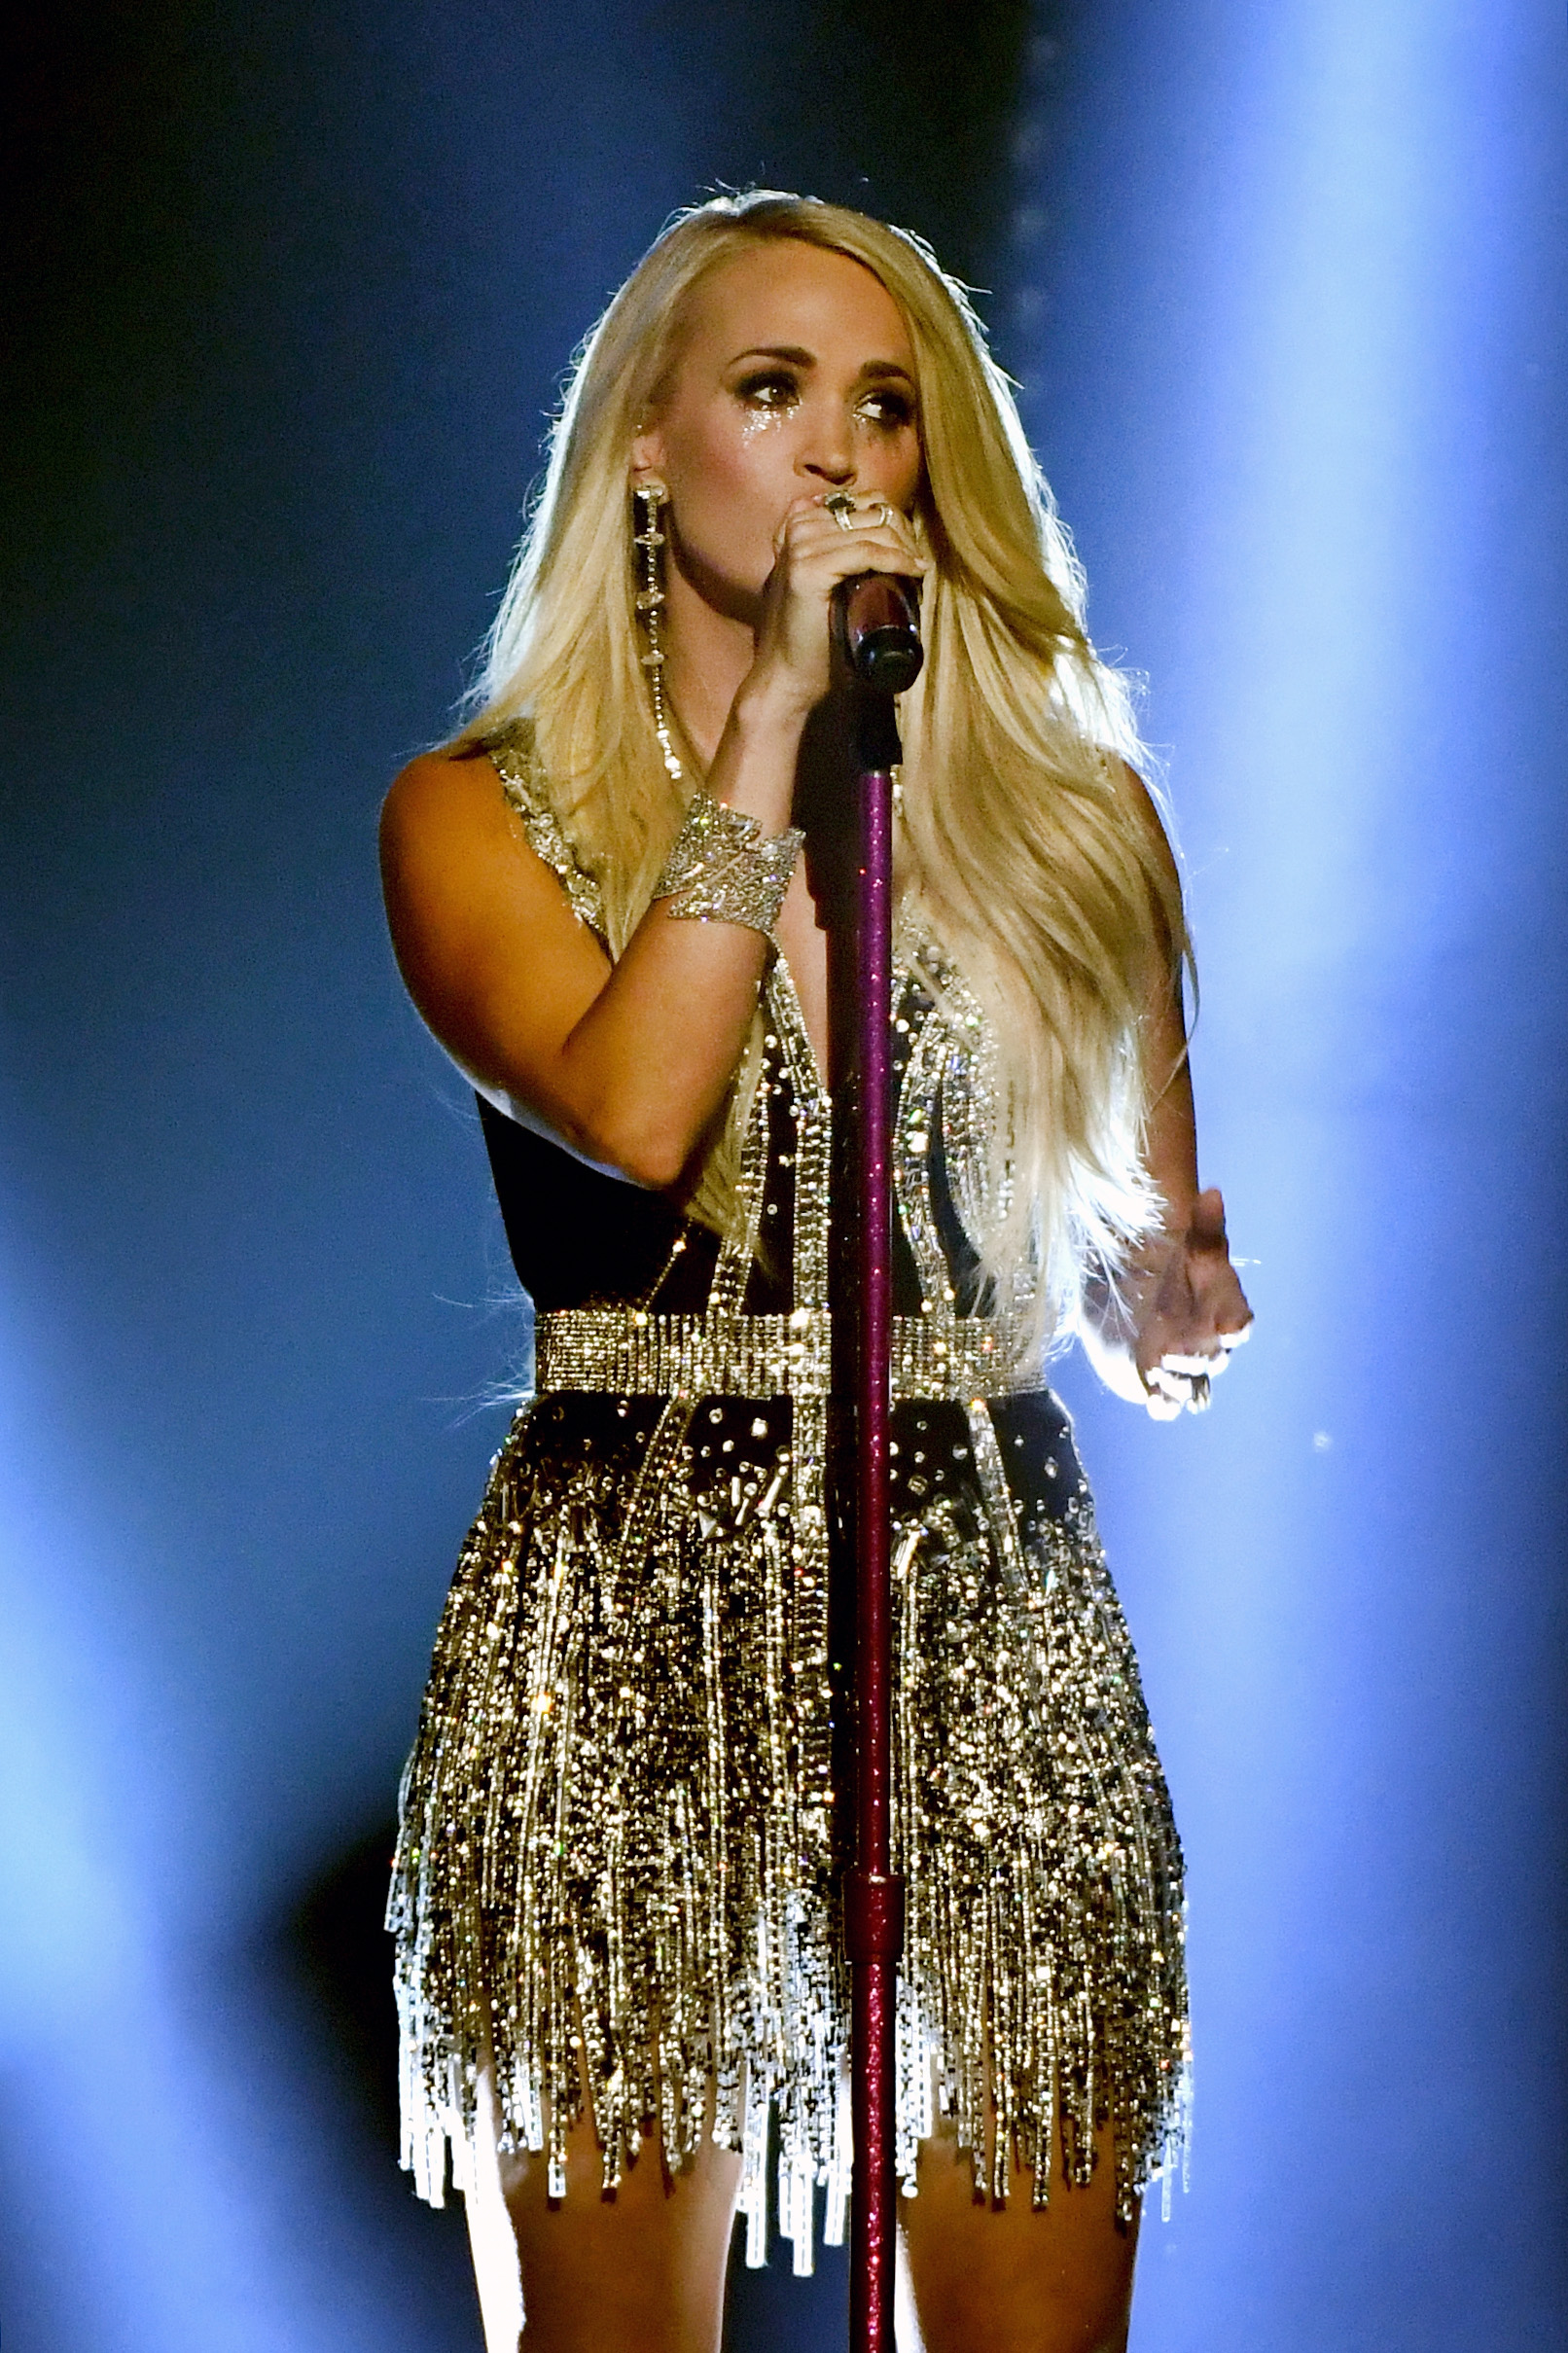 3 <em>Major</em> Hints Carrie Underwood (Probably) Dropped on Her New Album